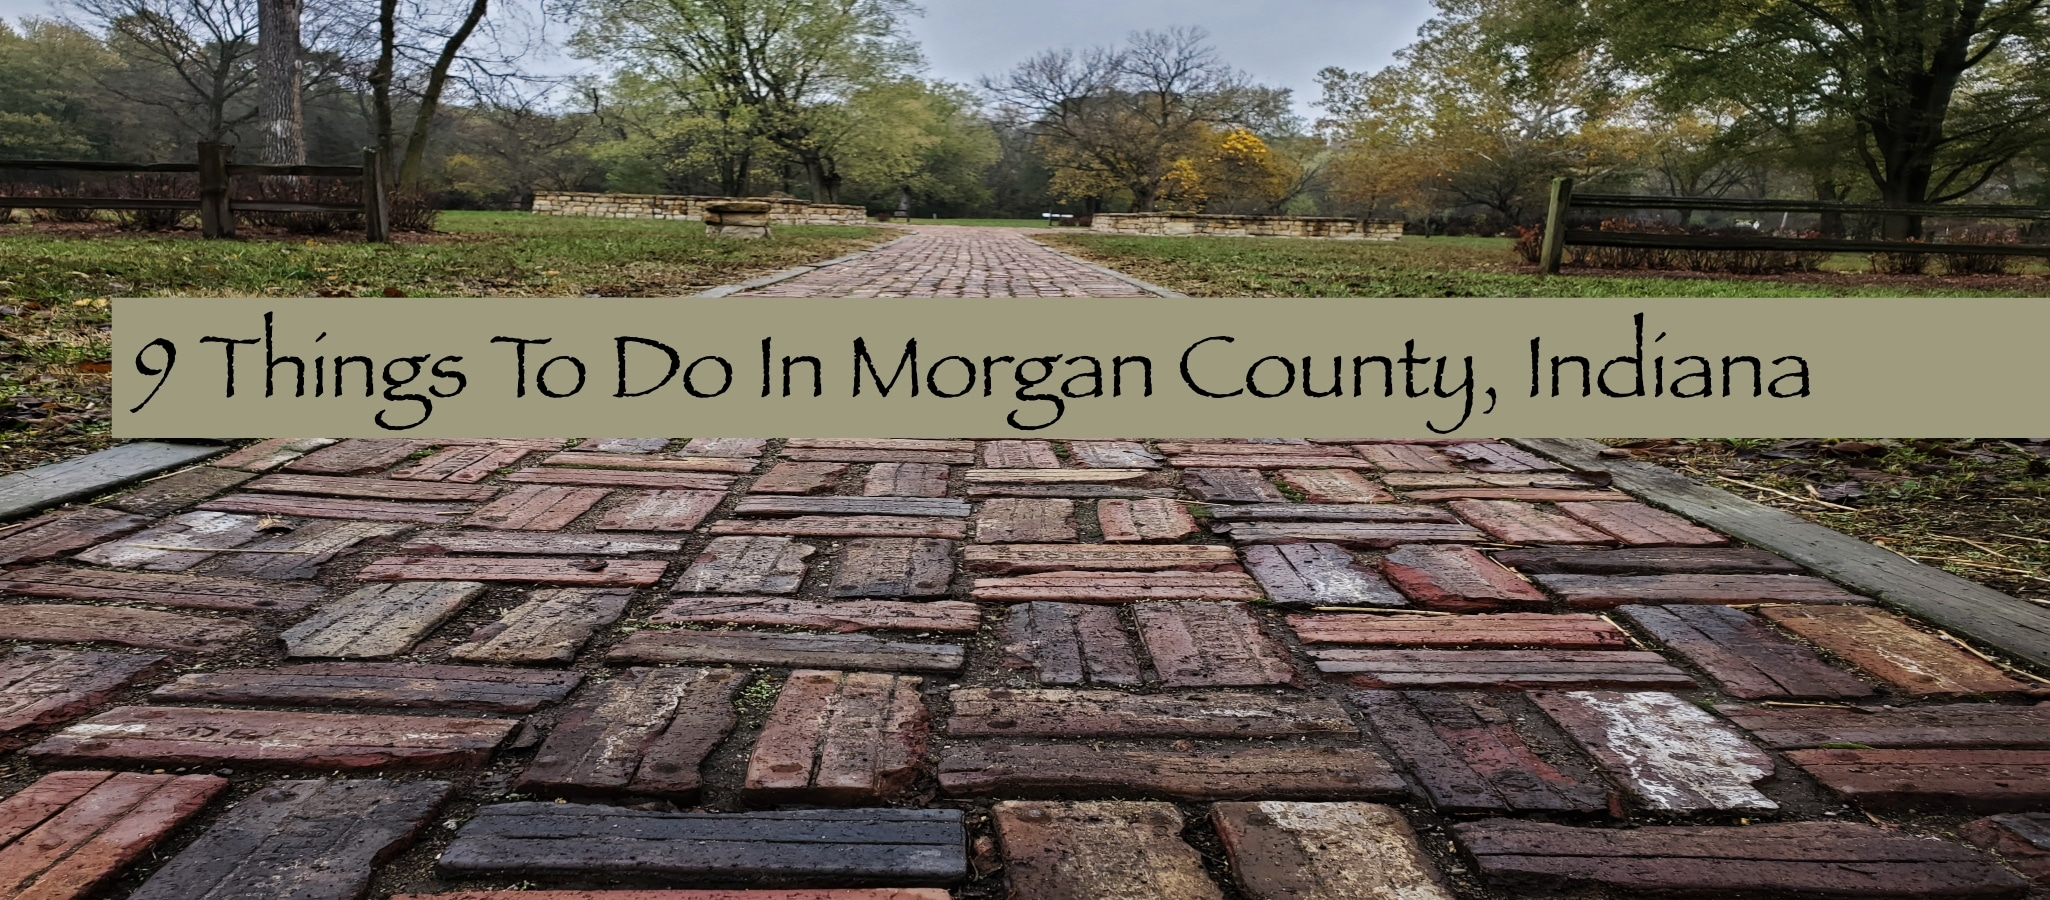 Morgan County Indiana